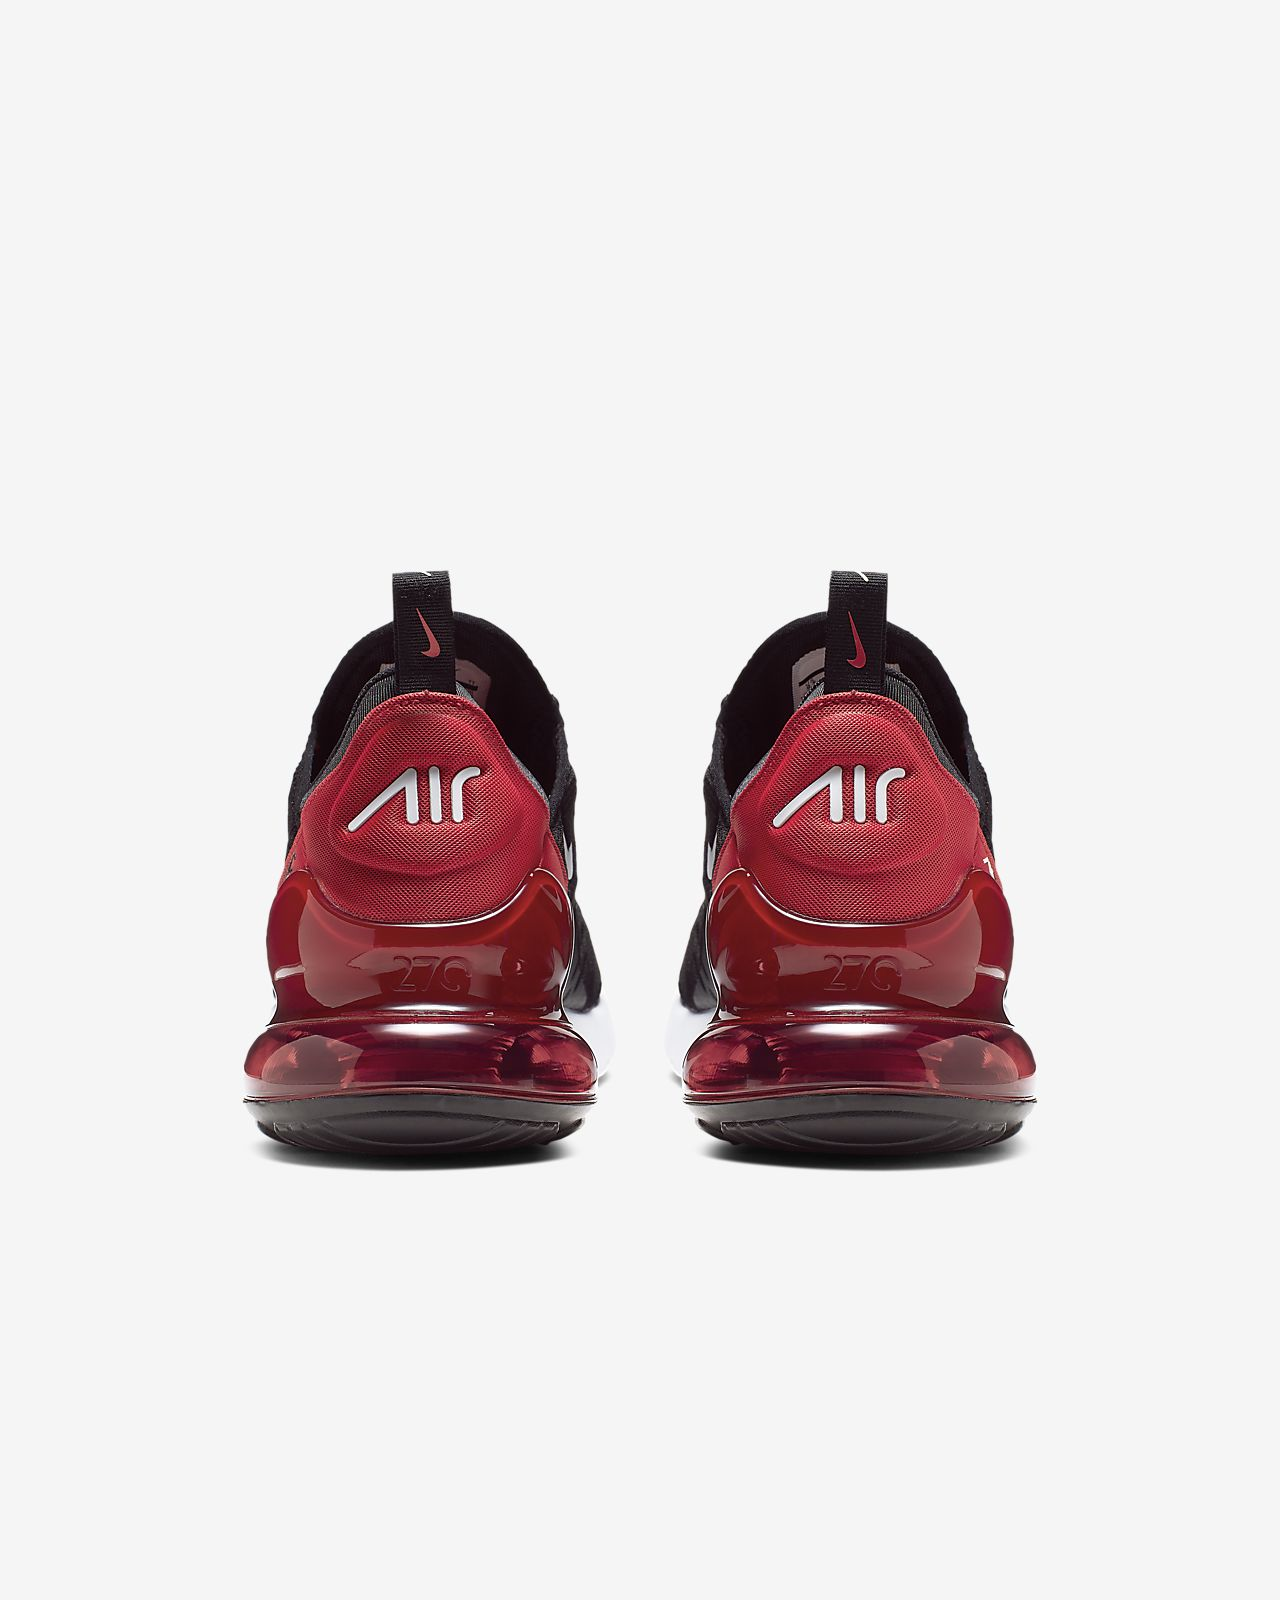 new concept b26a5 c5213 ... Nike Air Max 270 Herrenschuh